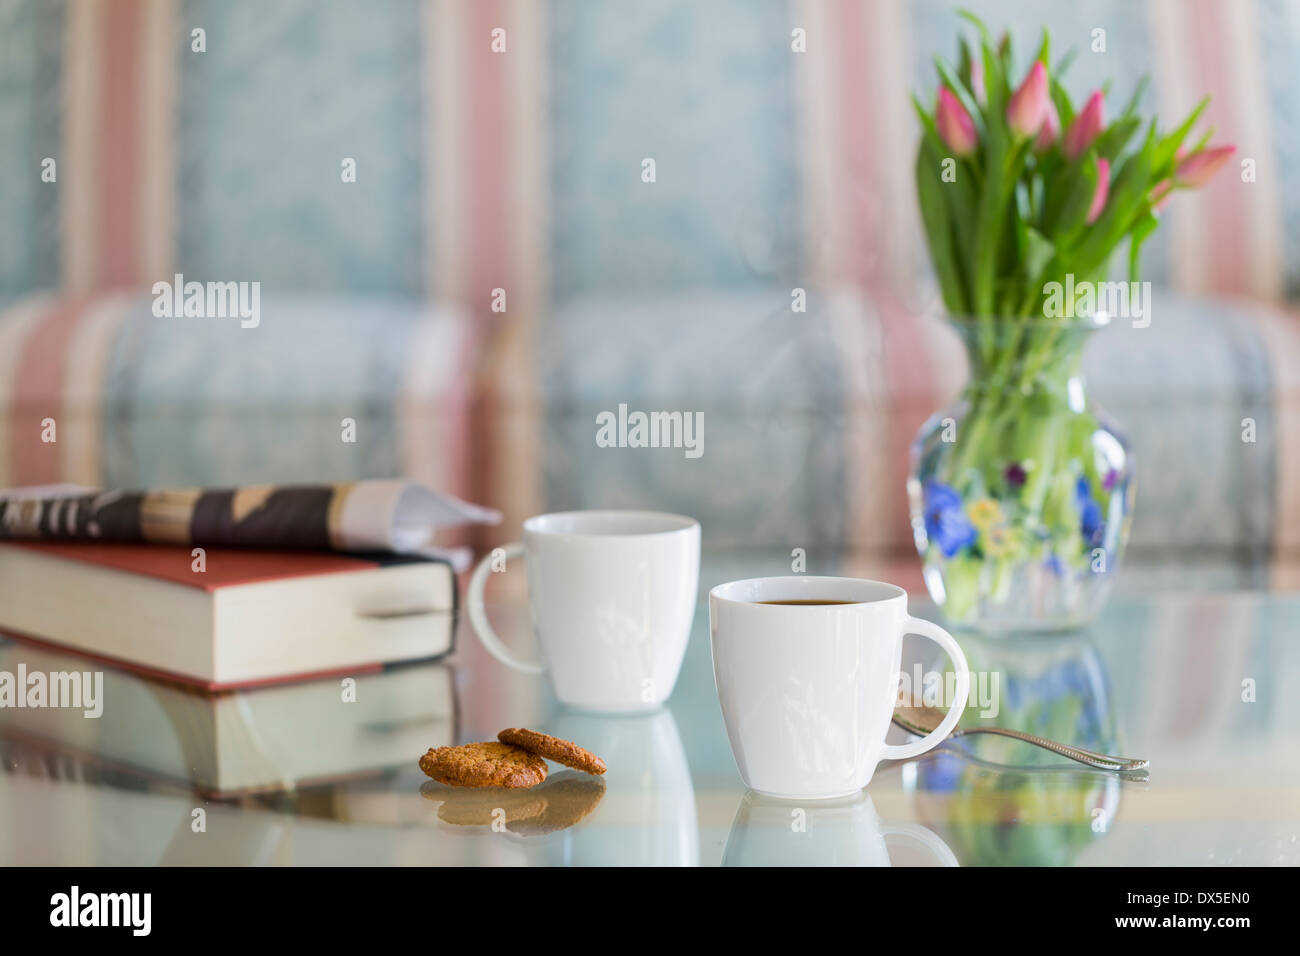 Coffee cups on glass table with spoon and ginger biscuits. Book and newspaper in the background - Stock Image